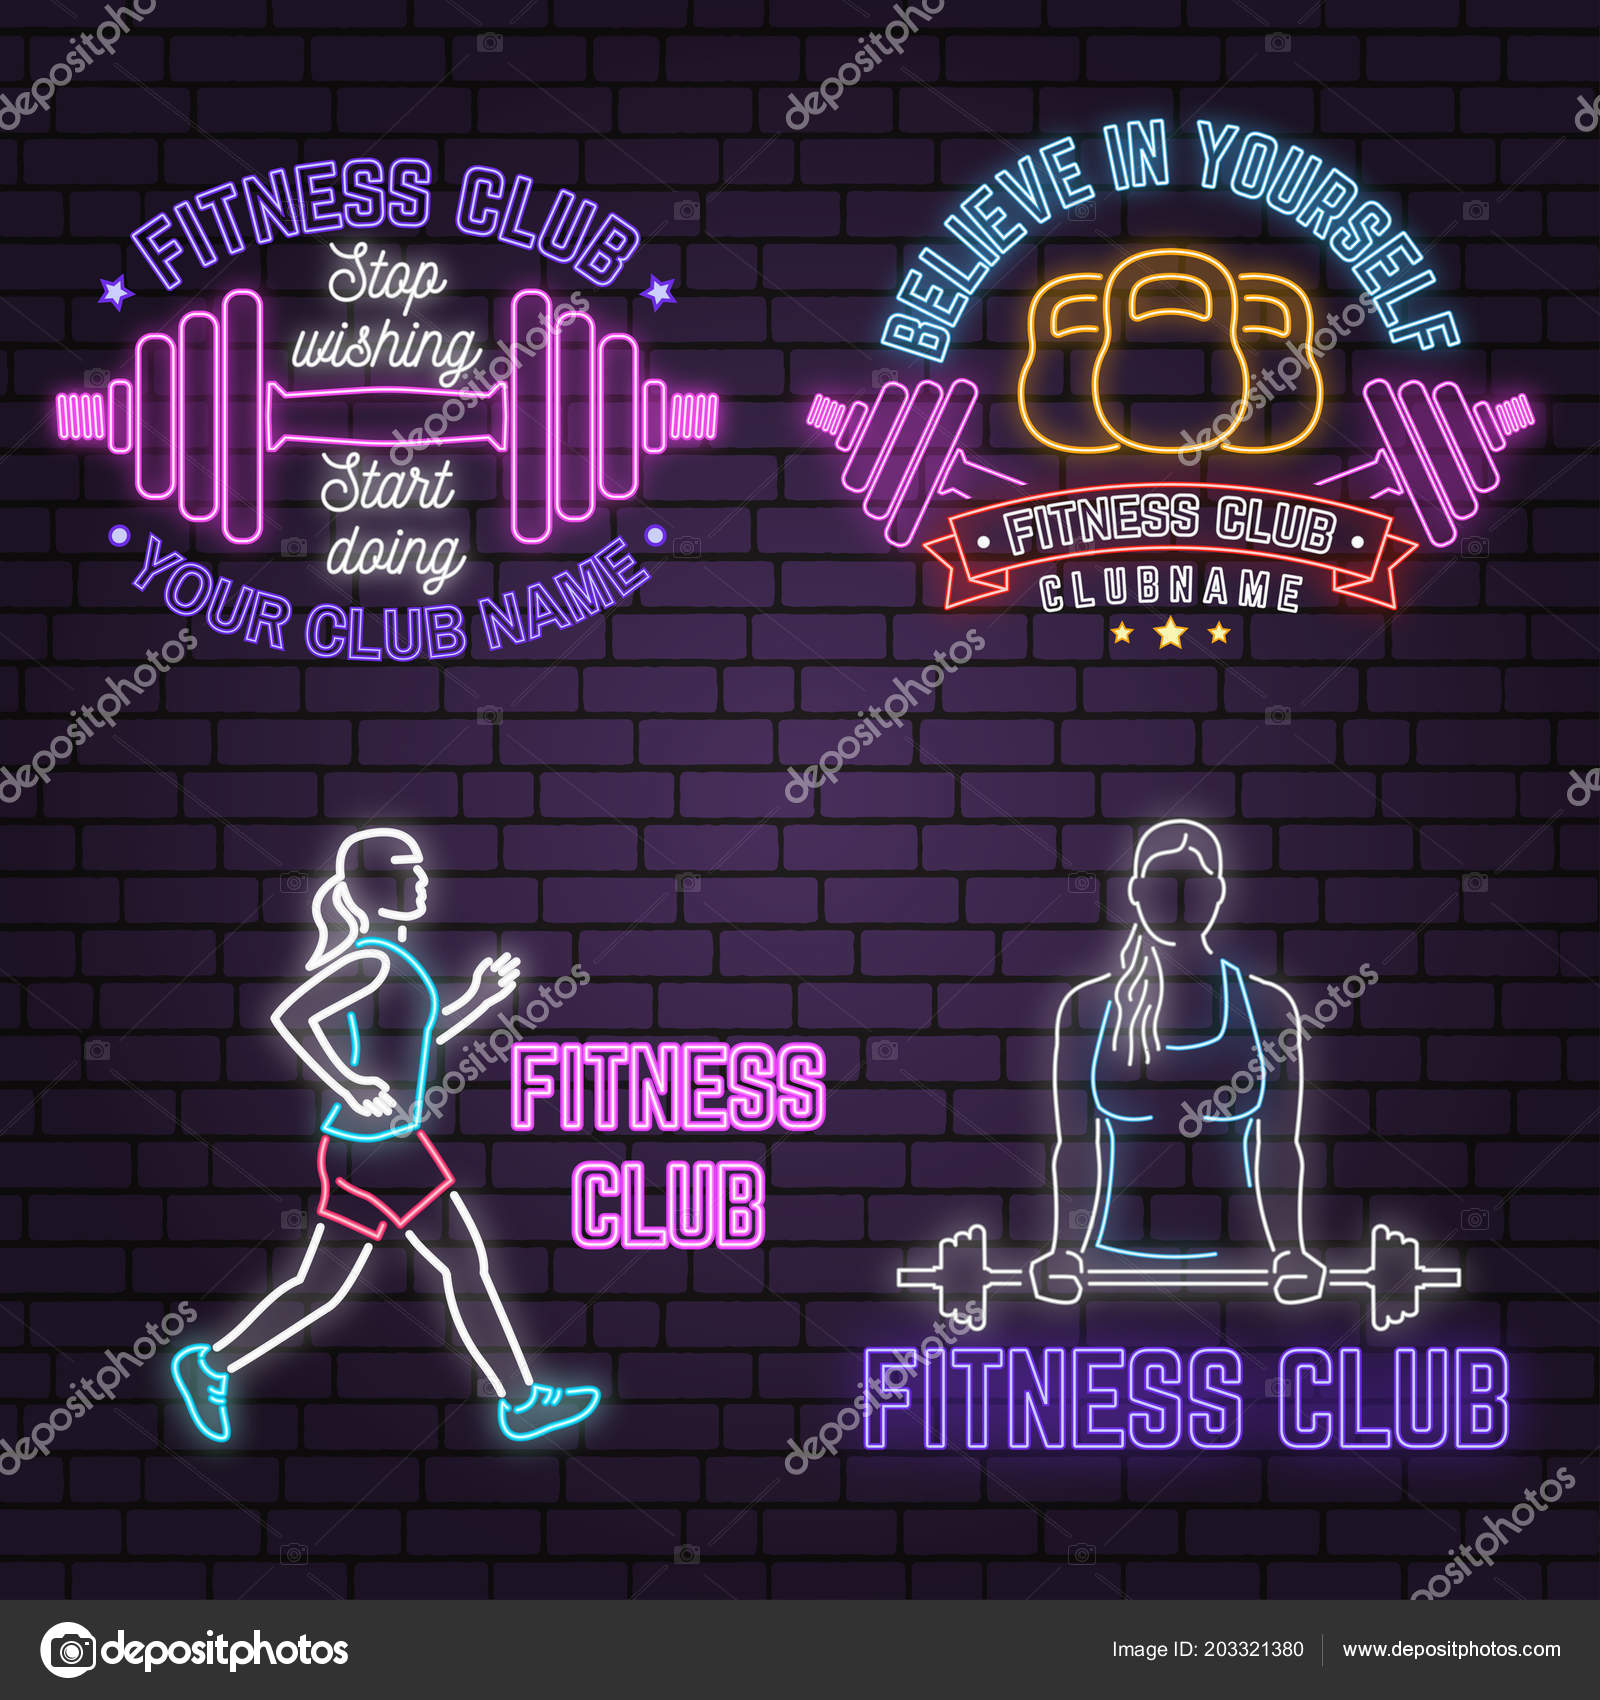 Neon fitness club sign on brick wall background vector illustration neon fitness club sign on brick wall background vector illustration believe in yourself neon design for fitness centers emblems gym signs related health solutioingenieria Choice Image